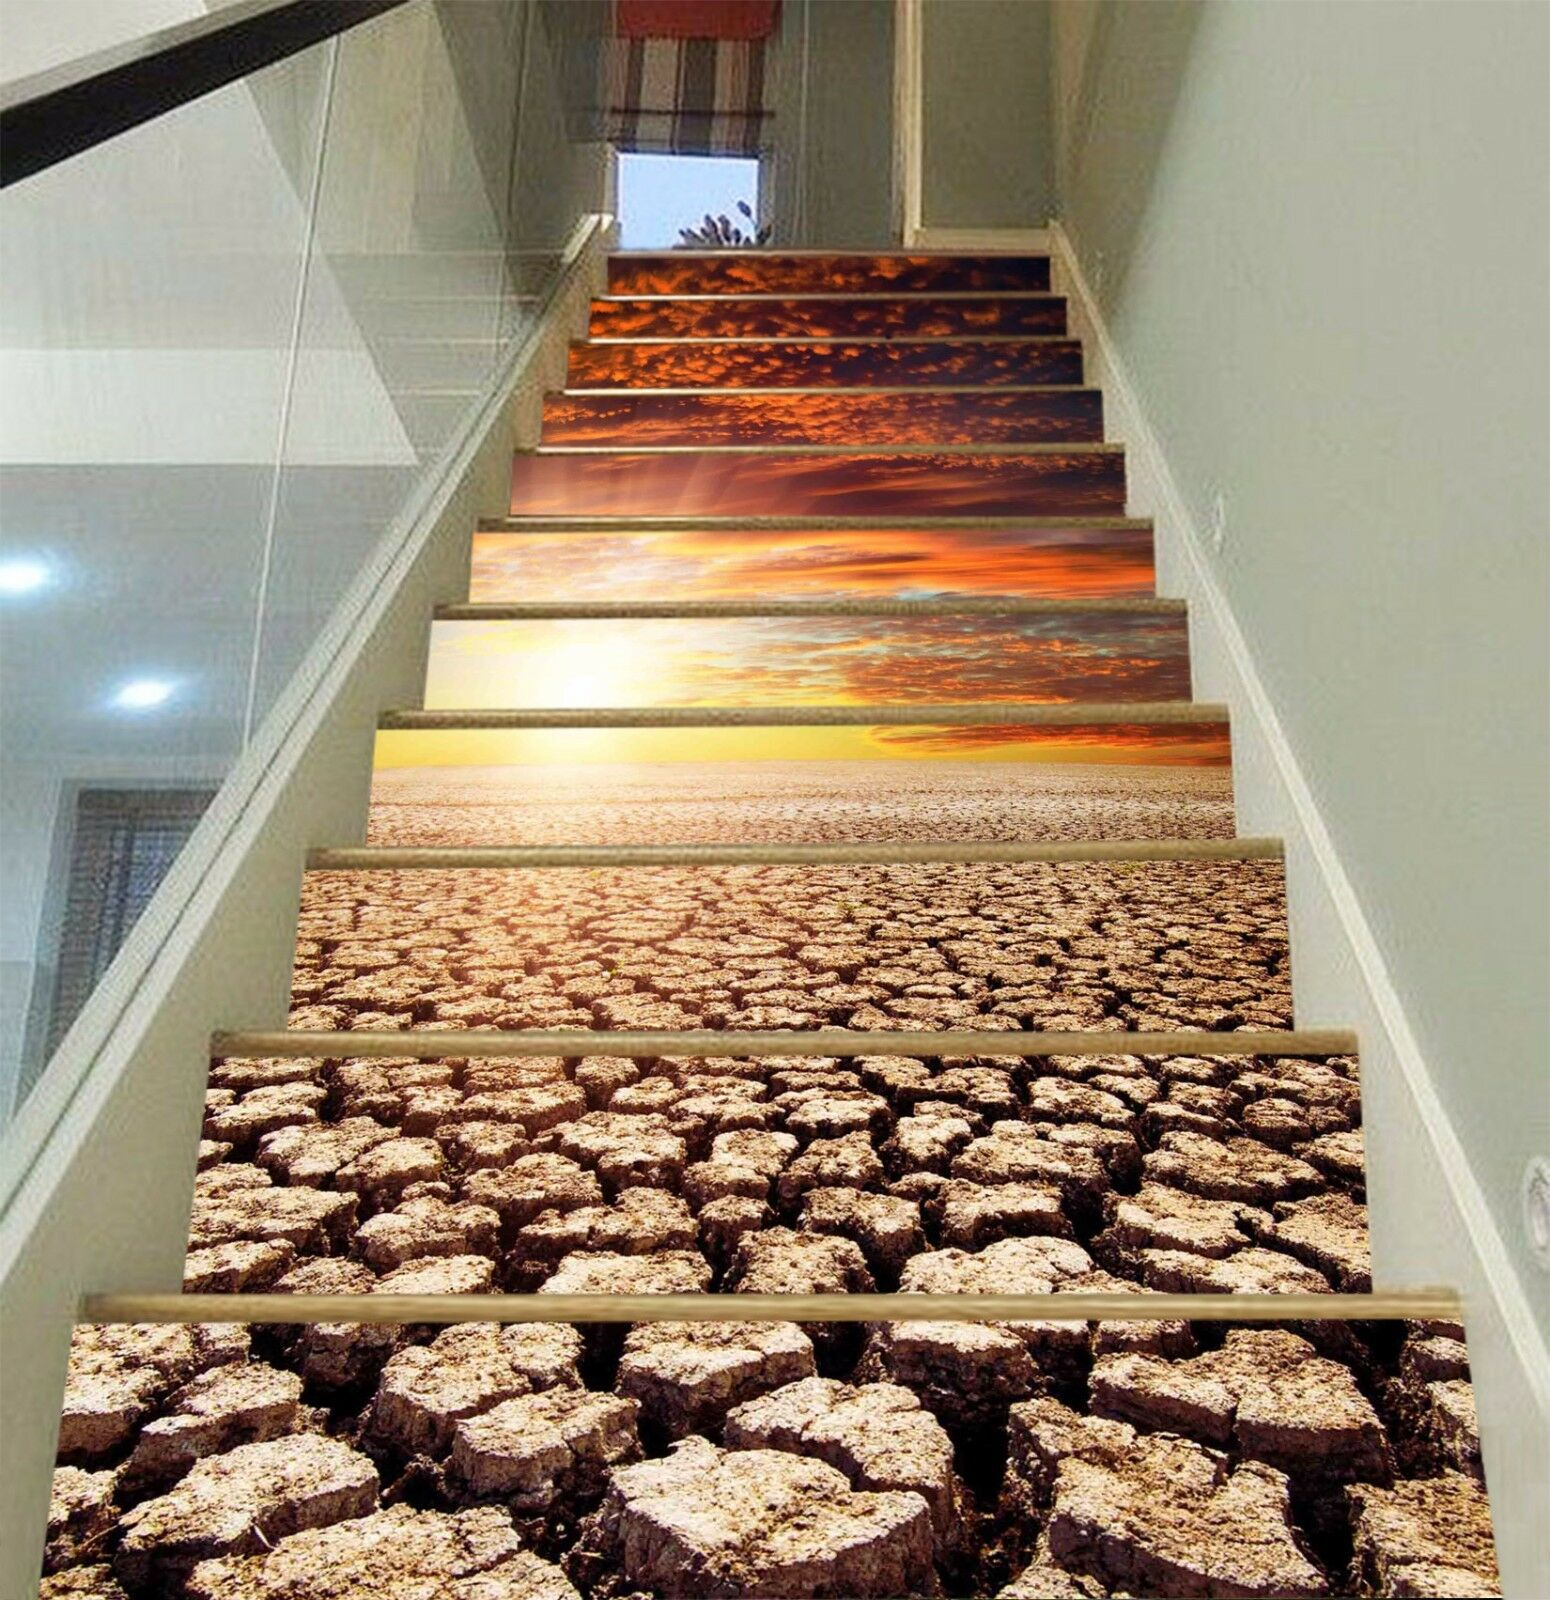 3D Dry Ground 774 Risers Decoration Photo Mural Vinyl Decal Wallpaper CA